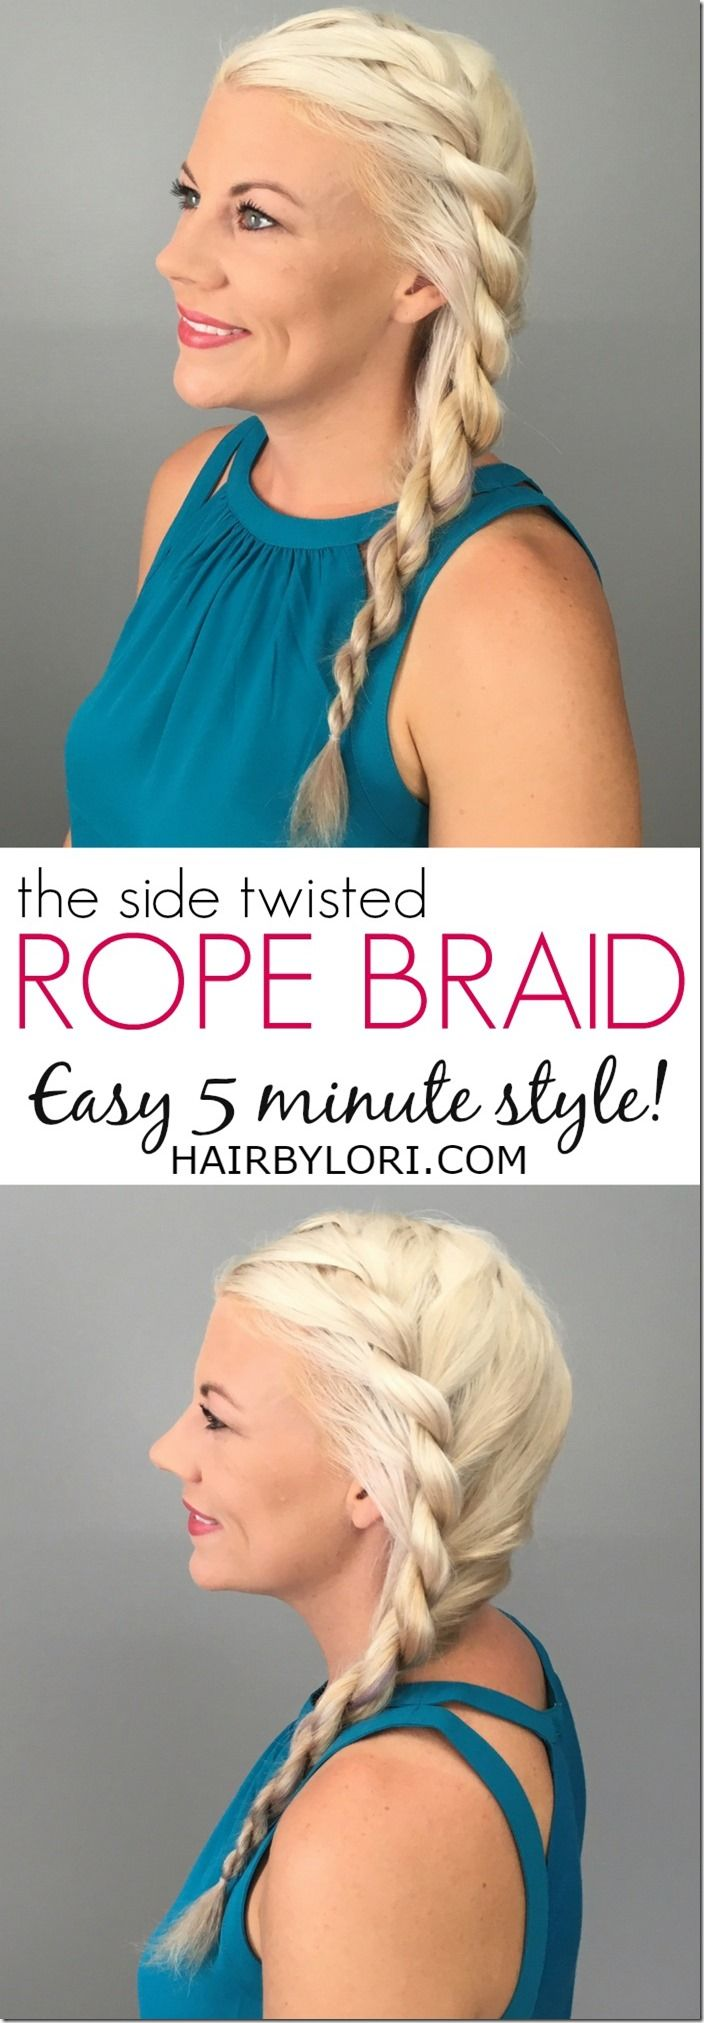 Side Rope Braid tutorial - easy 5 minute hairstyle